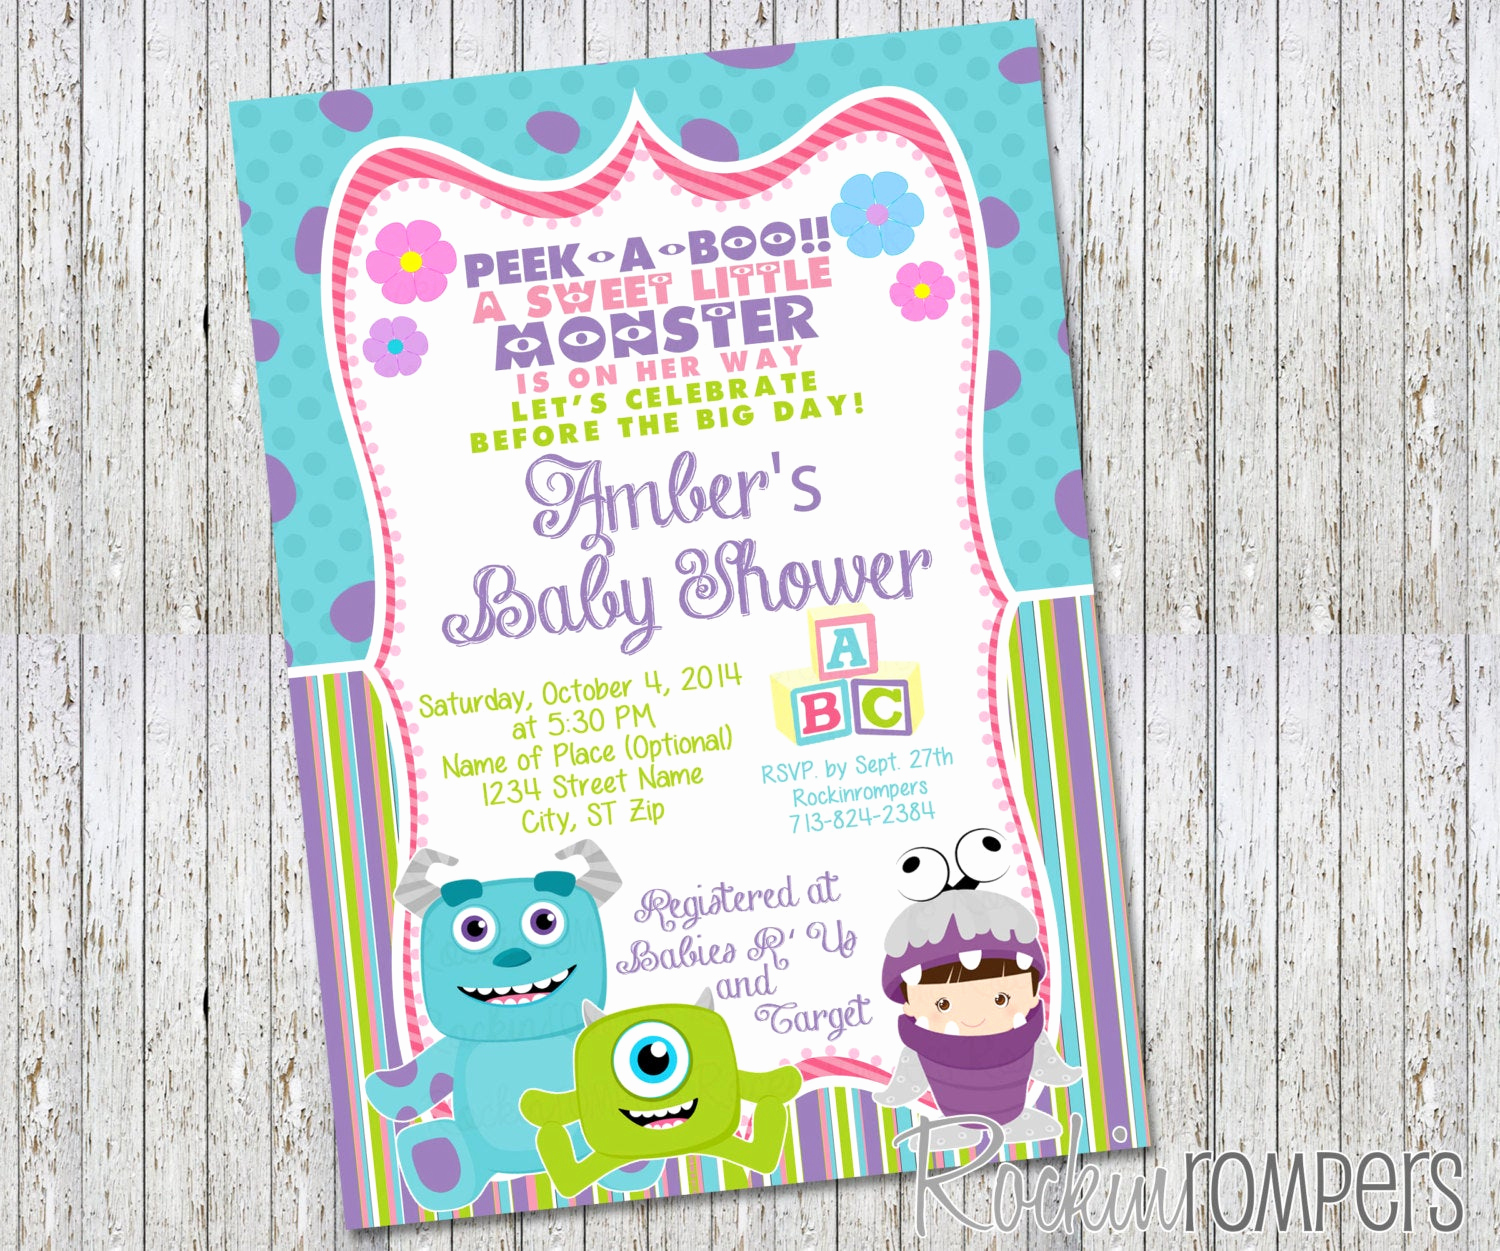 Monsters Inc Baby Shower Invitation Awesome Girl Monsters Inc Inspired Baby Shower Invitation